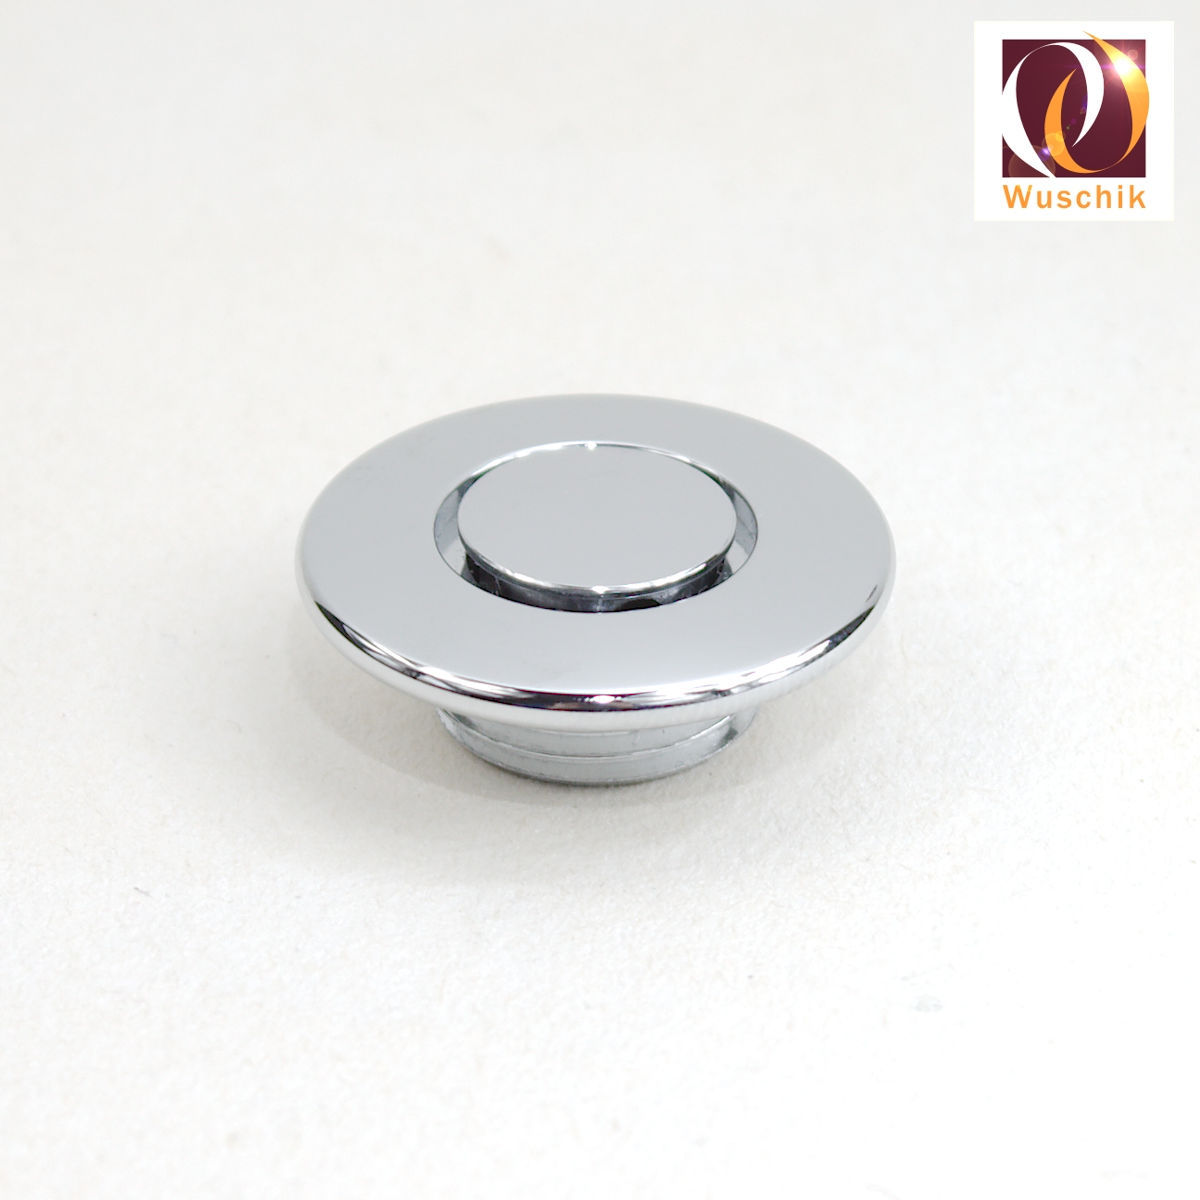 Jacuzzi Pool Top Caps Airjet Cap 28 Mm Ring Discharge For Jacuzzi And Whirlpools